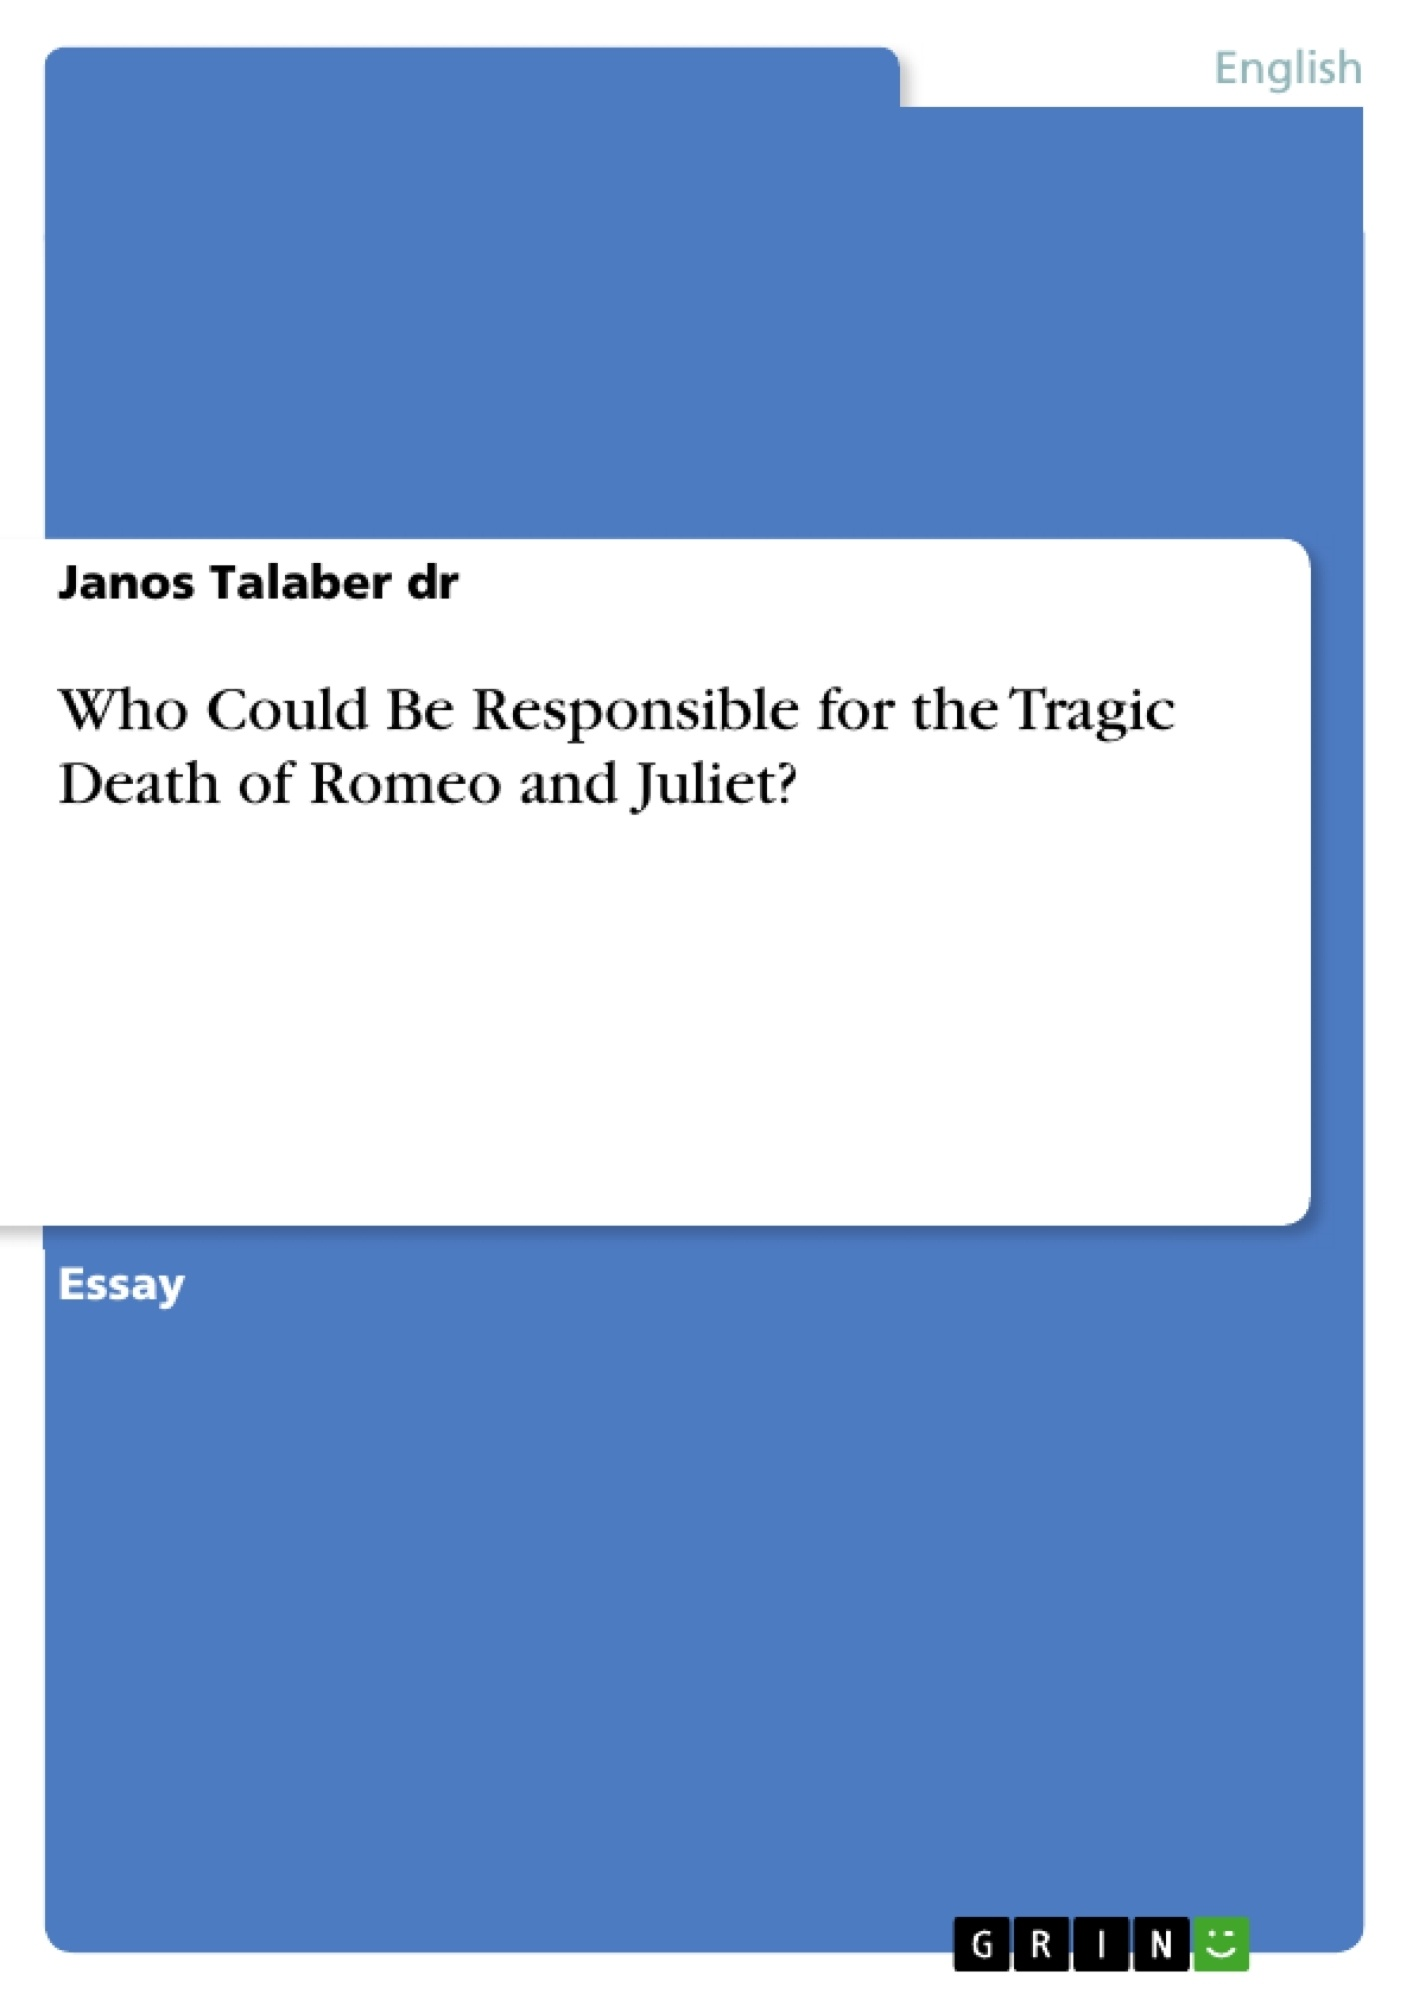 who is responsible for romeo and juliets death essay